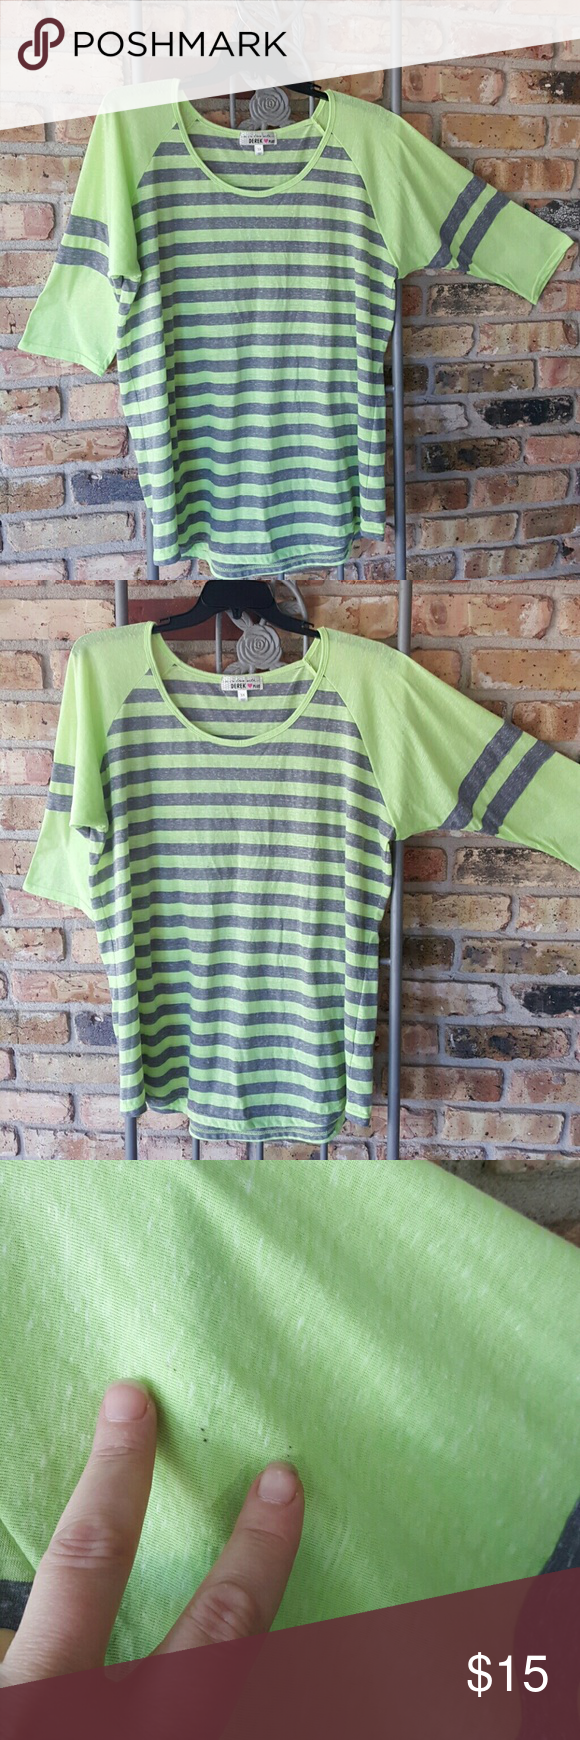 Derek Heart baseball top Neon green and heather gray baseball top. Excellent condition Derek Heart Tops